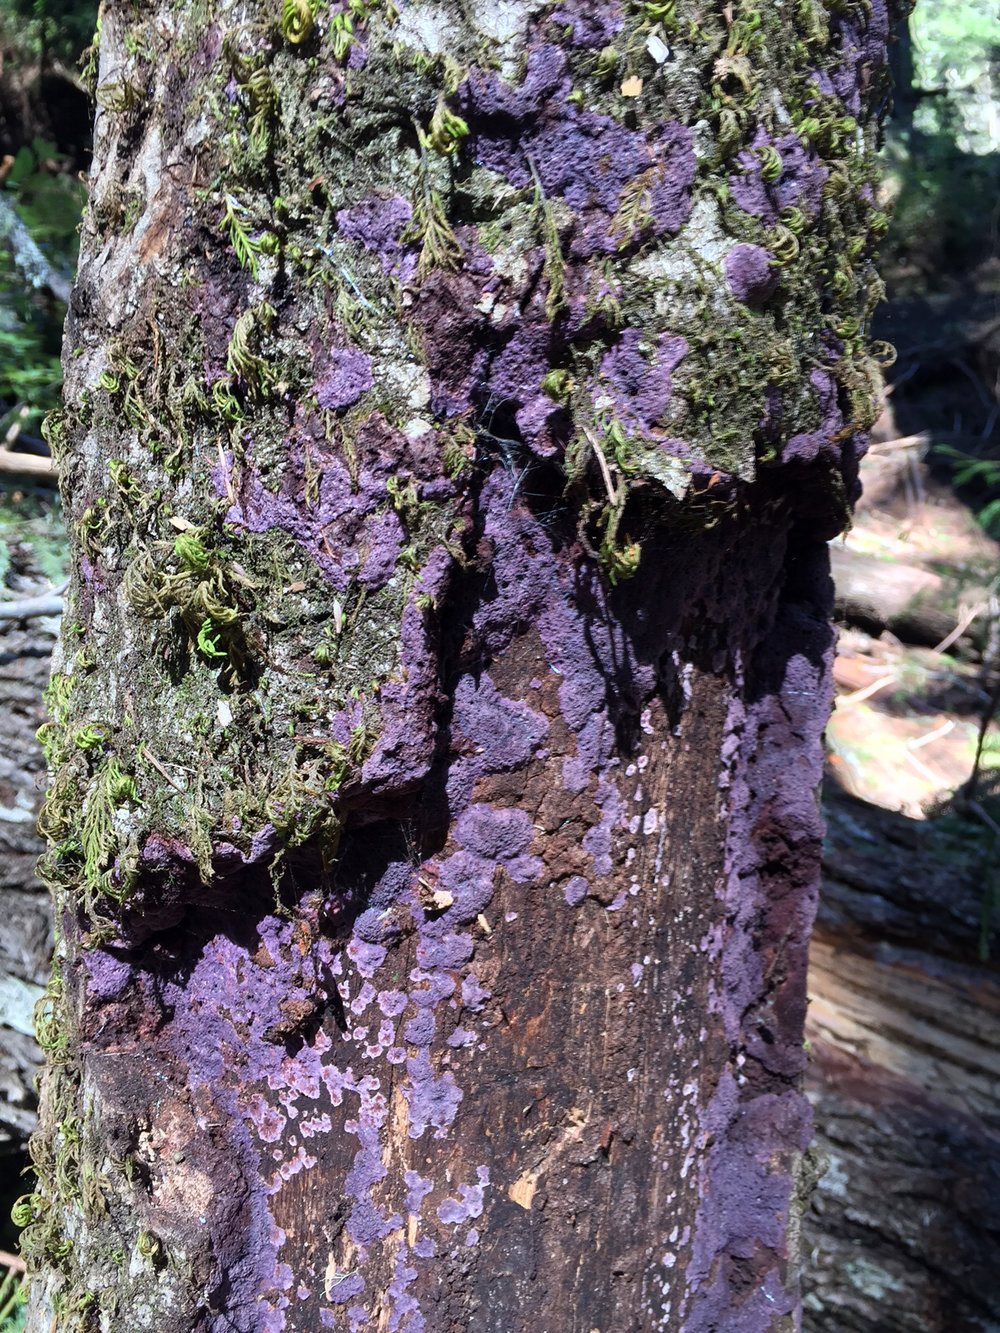 Purple Crust fungus (Phanerochaete crassa)  is the lignin-degrading enzyme system of this fungus.  The fungus decays the lignin in plants and leaves the cellulose behind.  The fungus has a very high optimum temperature (about 40 C), which means it can grow on wood chips in compost piles, which reach high temperatures.